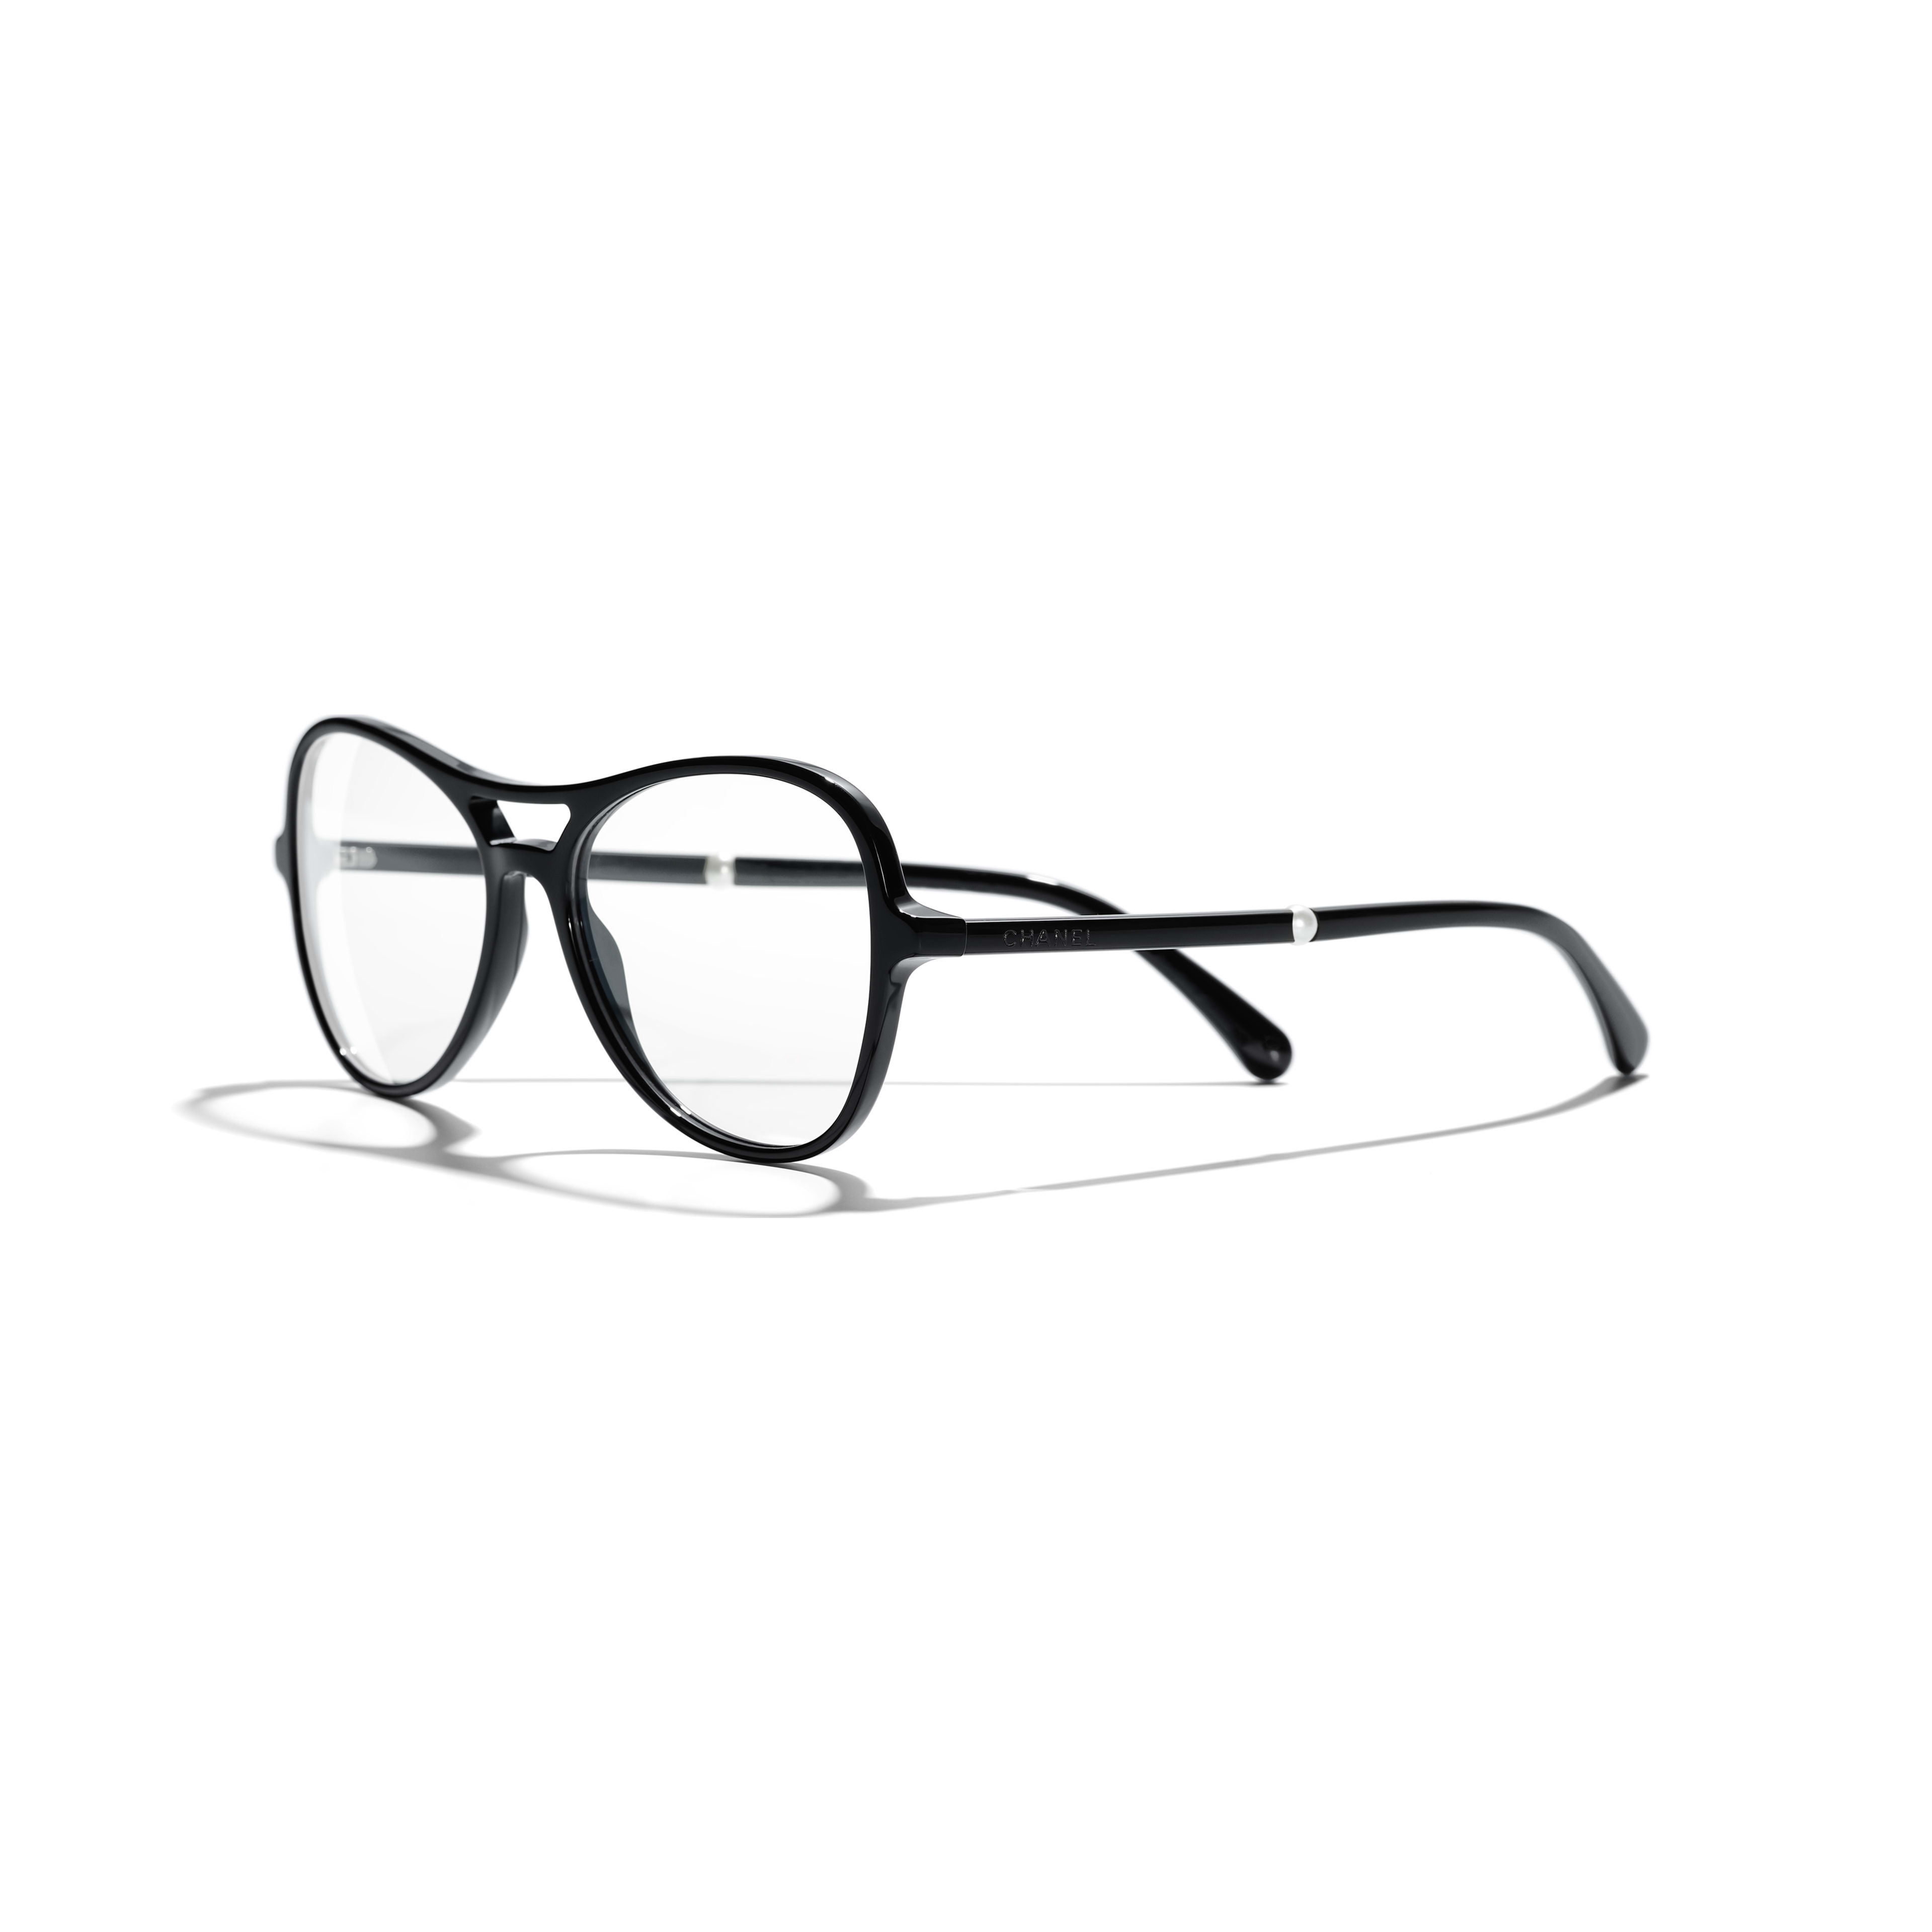 Pilot Eyeglasses - Black - Acetate & Imitation Pearls - Extra view - see full sized version